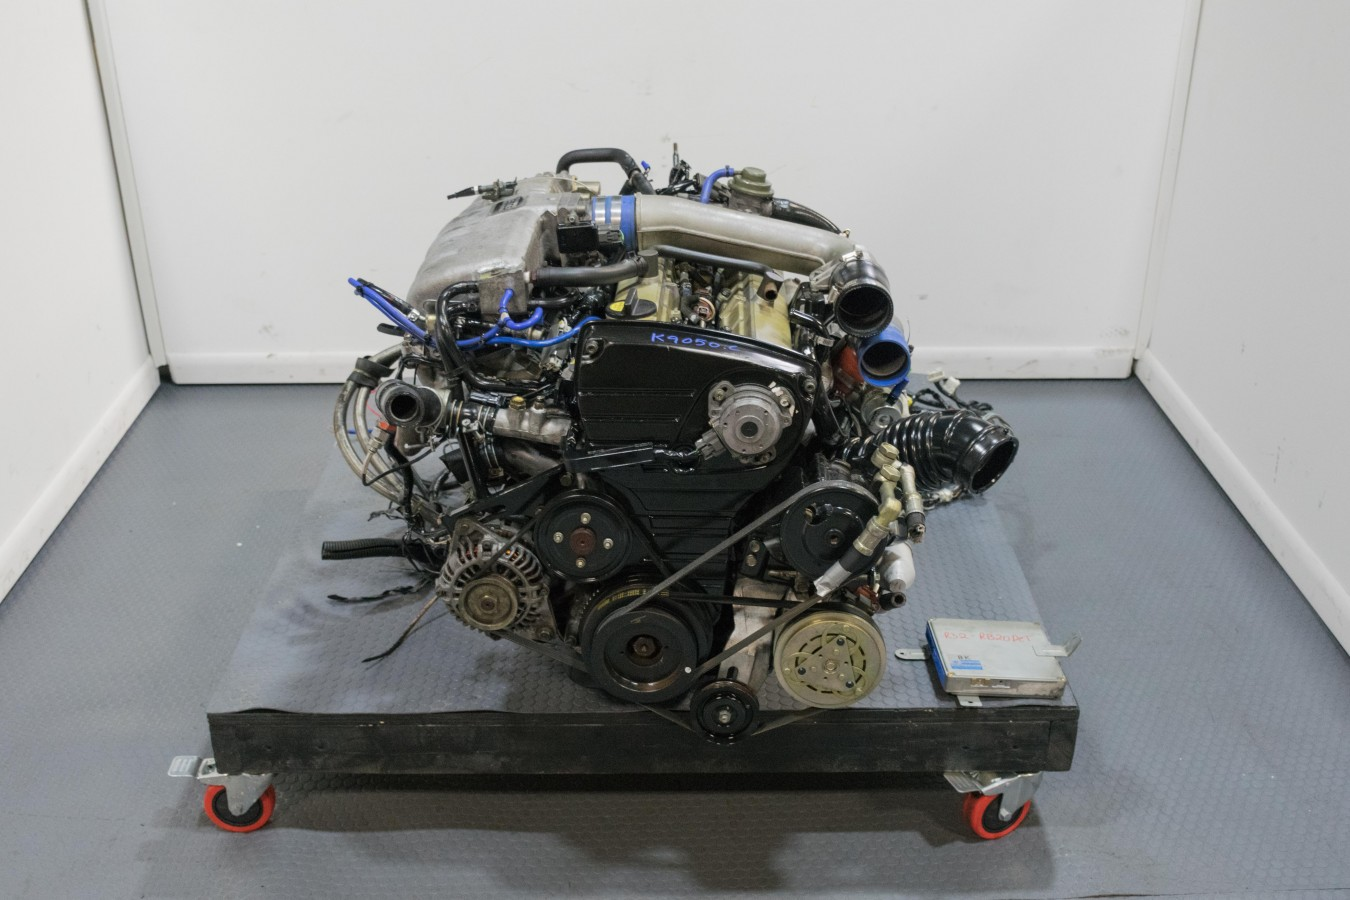 Low Mileage Rb20det Engine For Sale With 5mt Transmission Ecu Rb26 Wiring Harness 1157 Dsc 0164